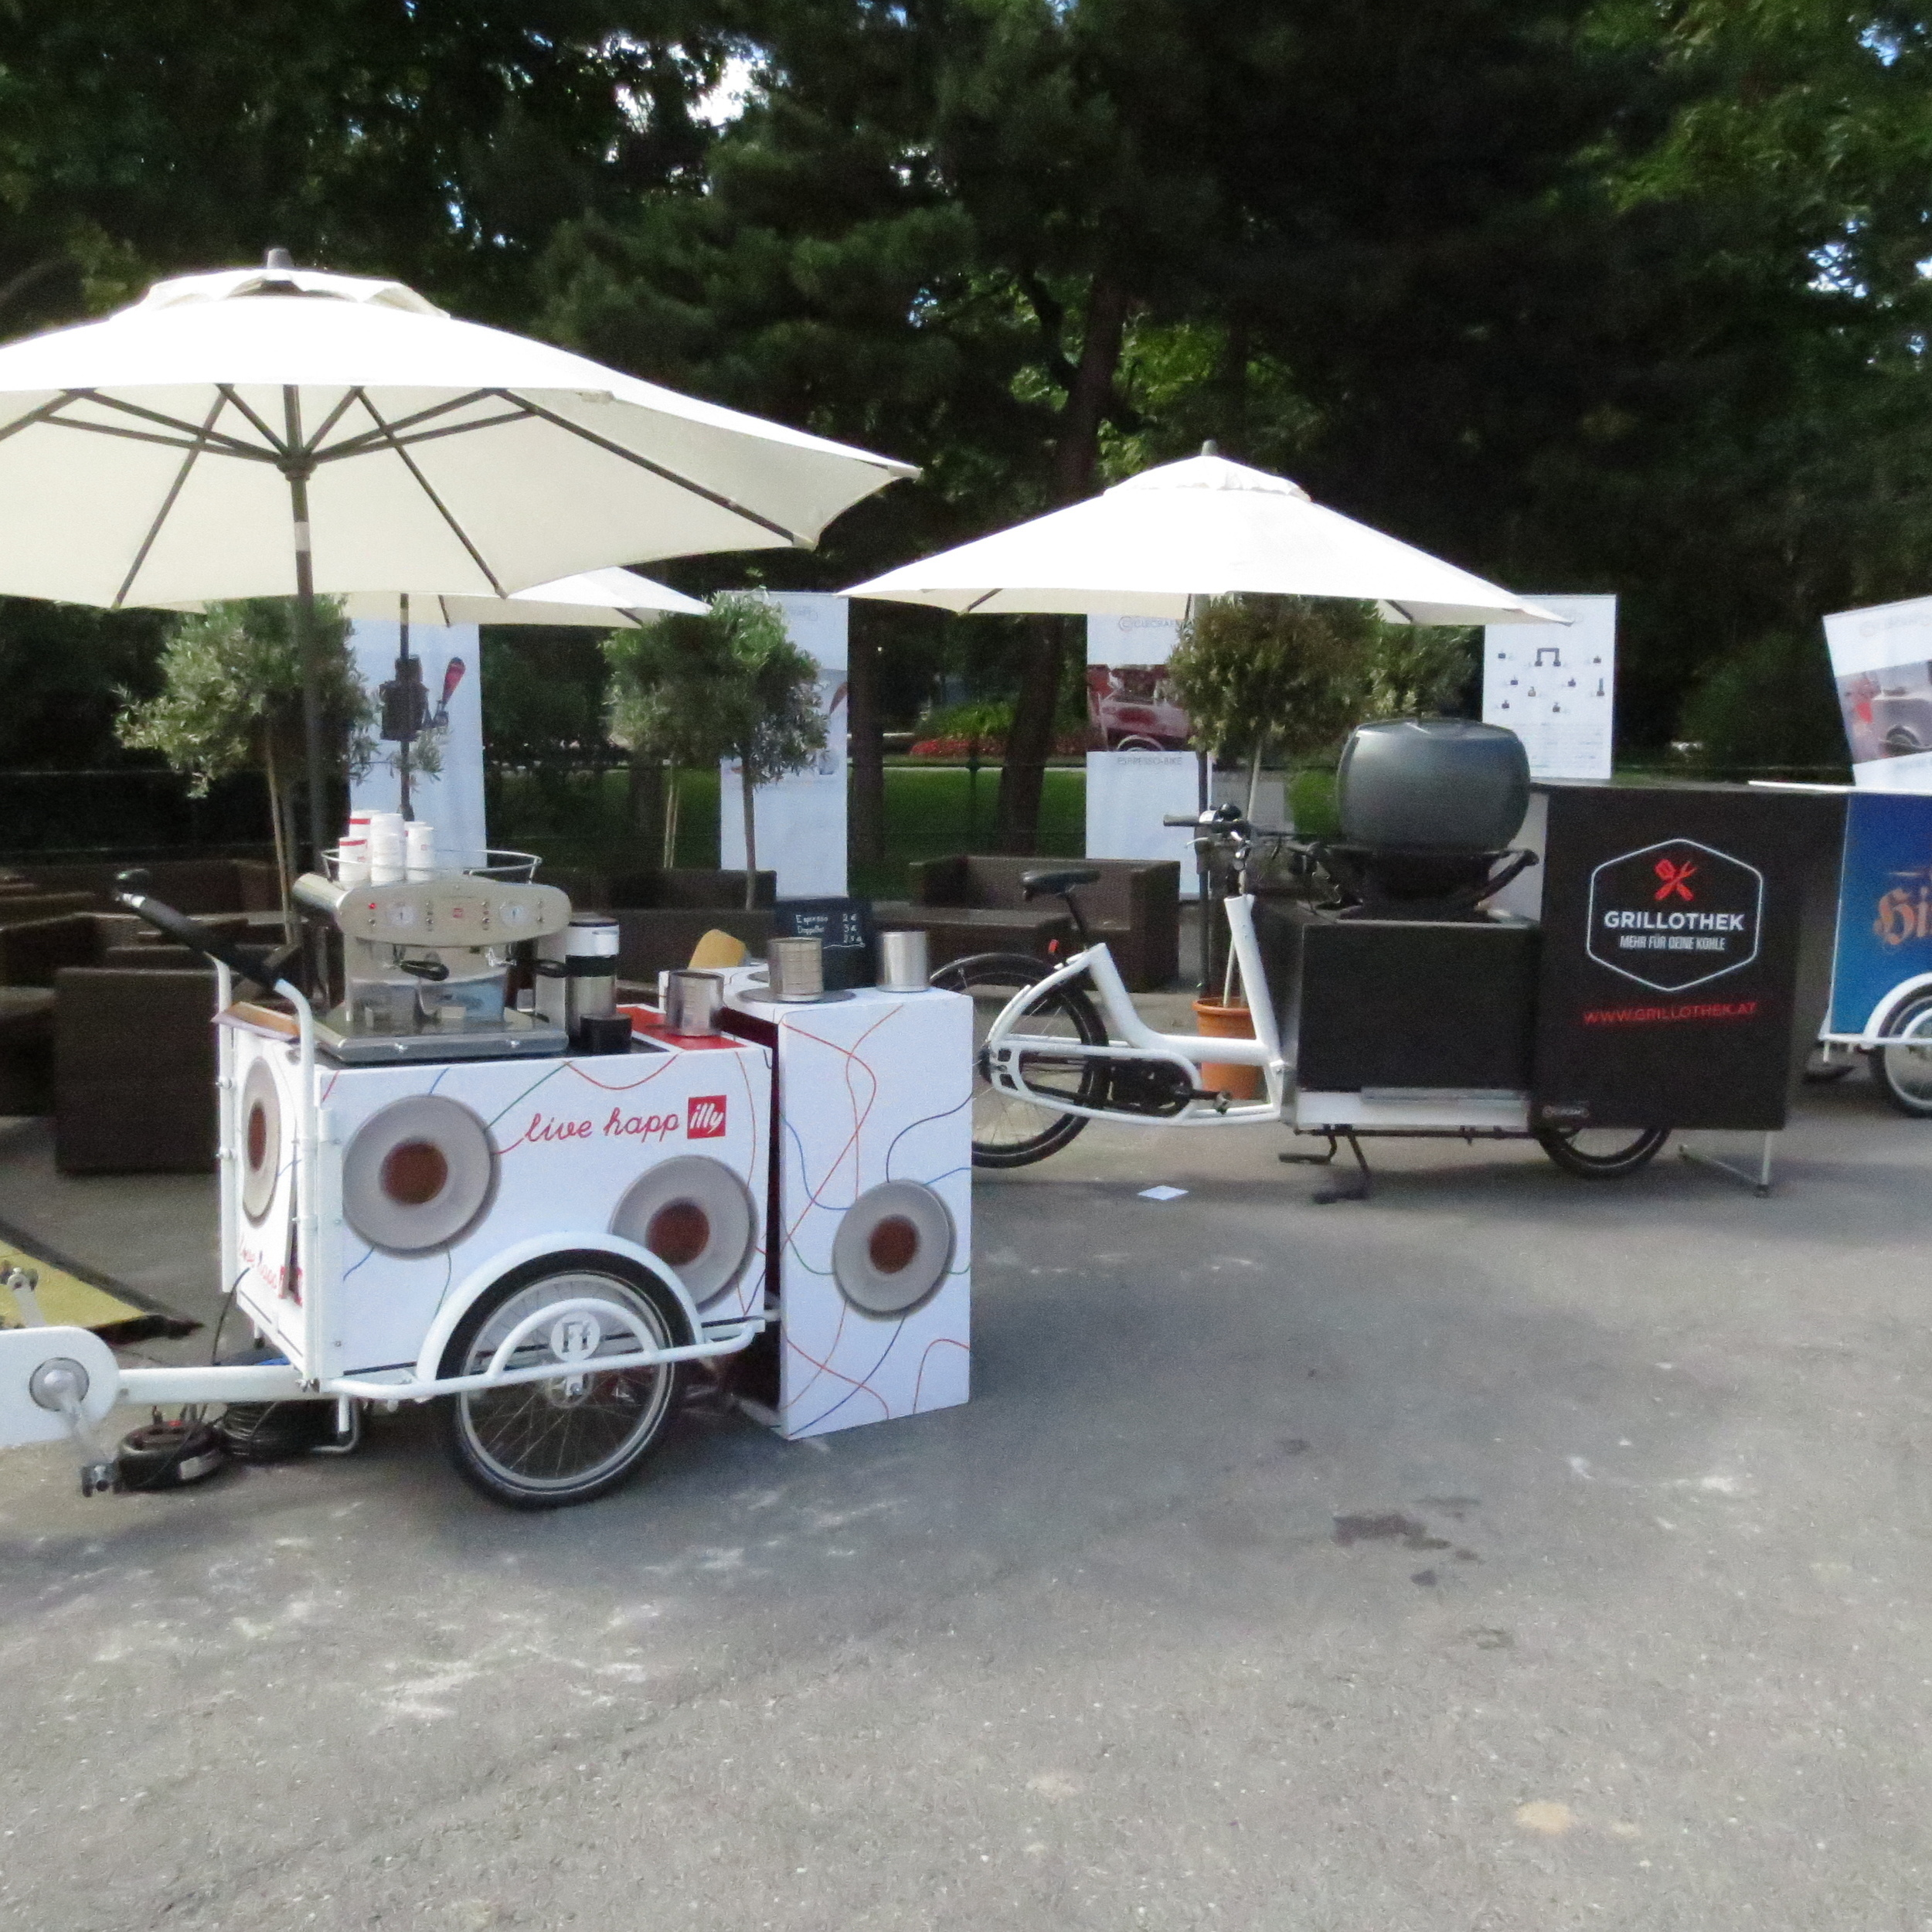 two cargo bikes, on the one there is a espresso machine installed and on the other there is a grill station